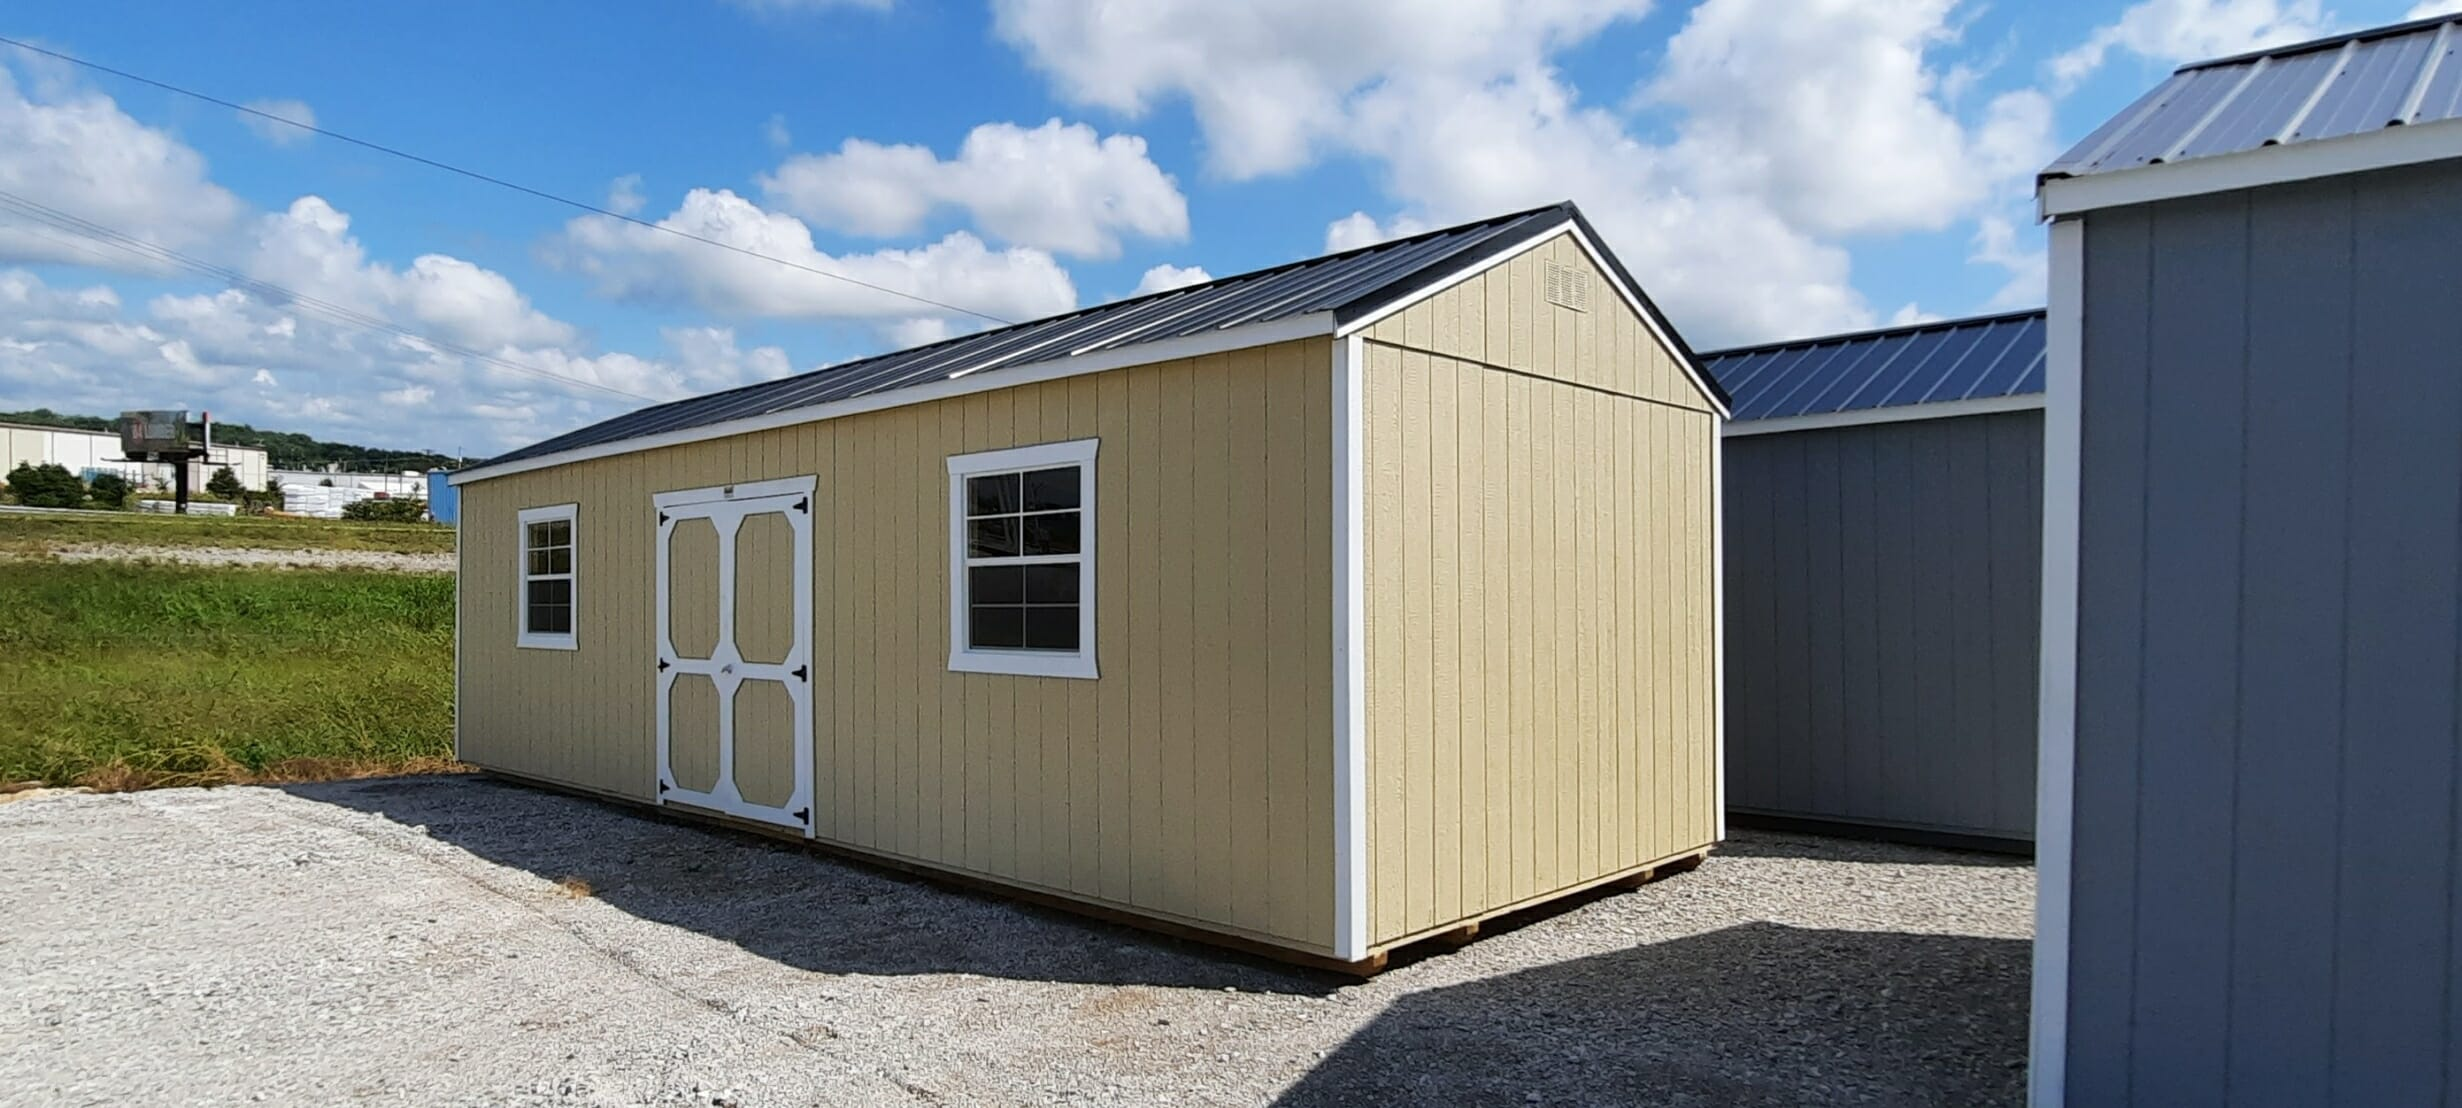 12 x 32 Utility Shed ONLY $361 Down- BBB708